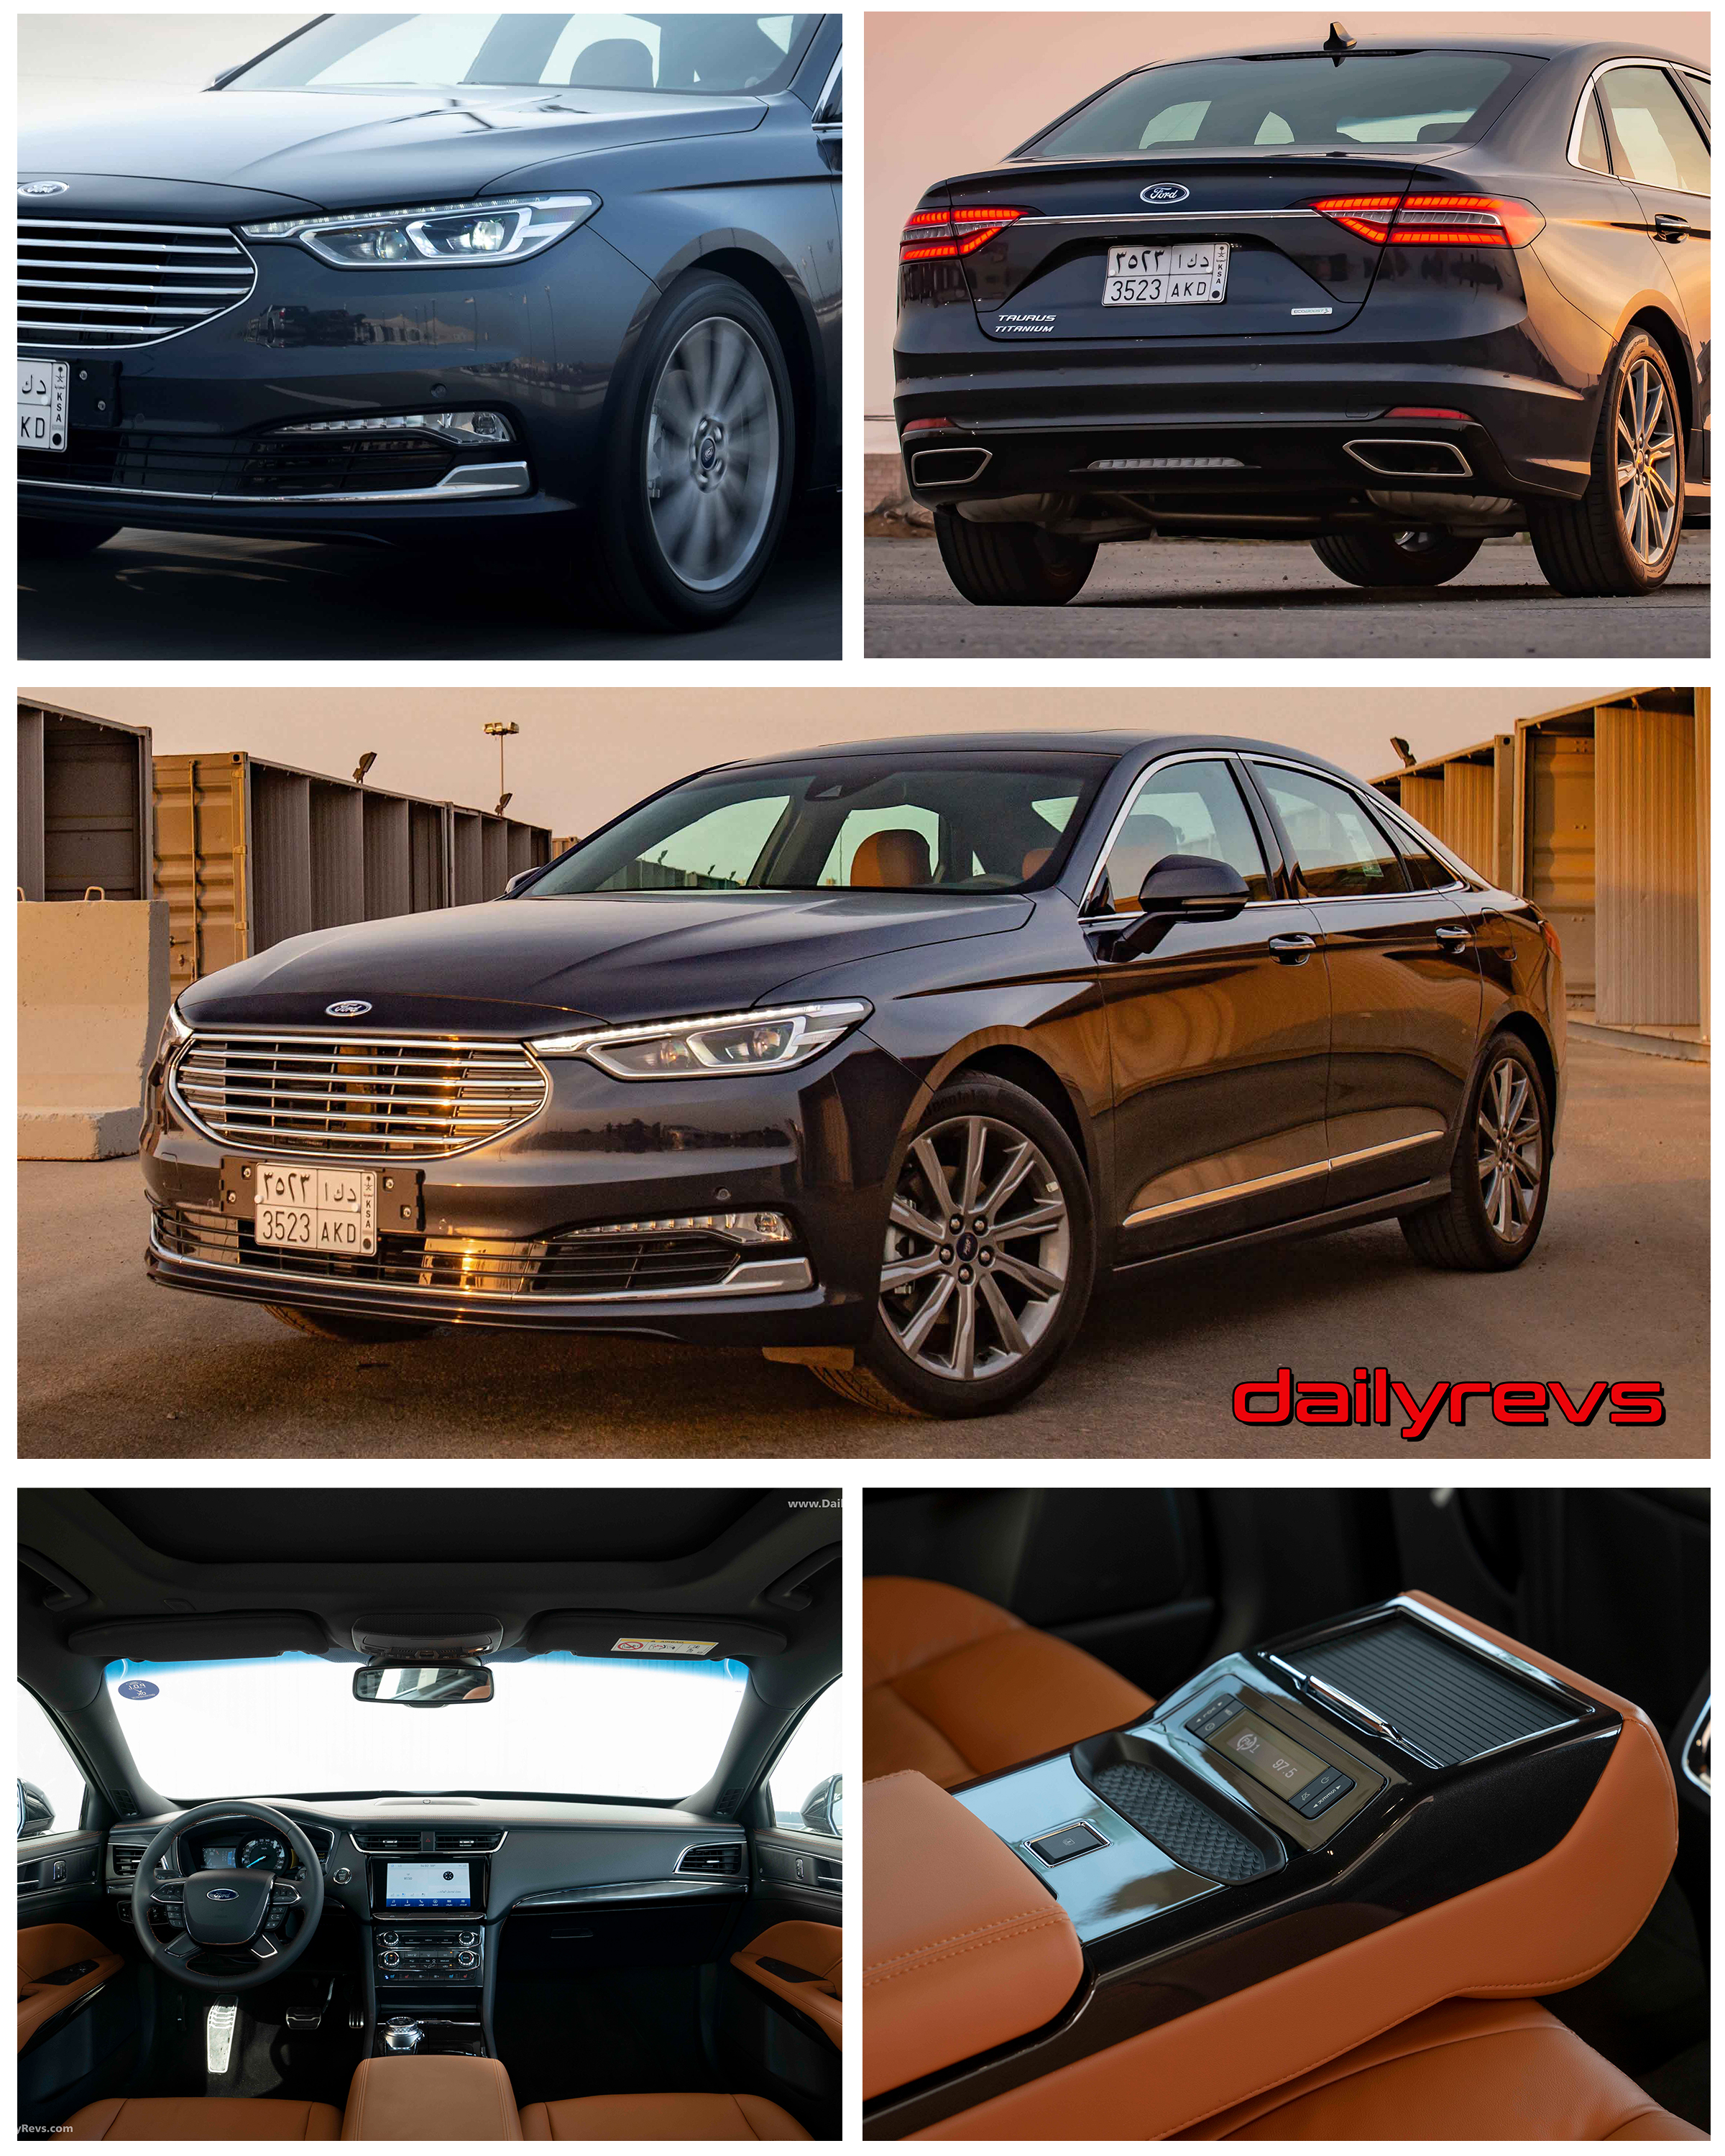 2020 Ford Taurus Hd Pictures Videos Specs Information Dailyrevs